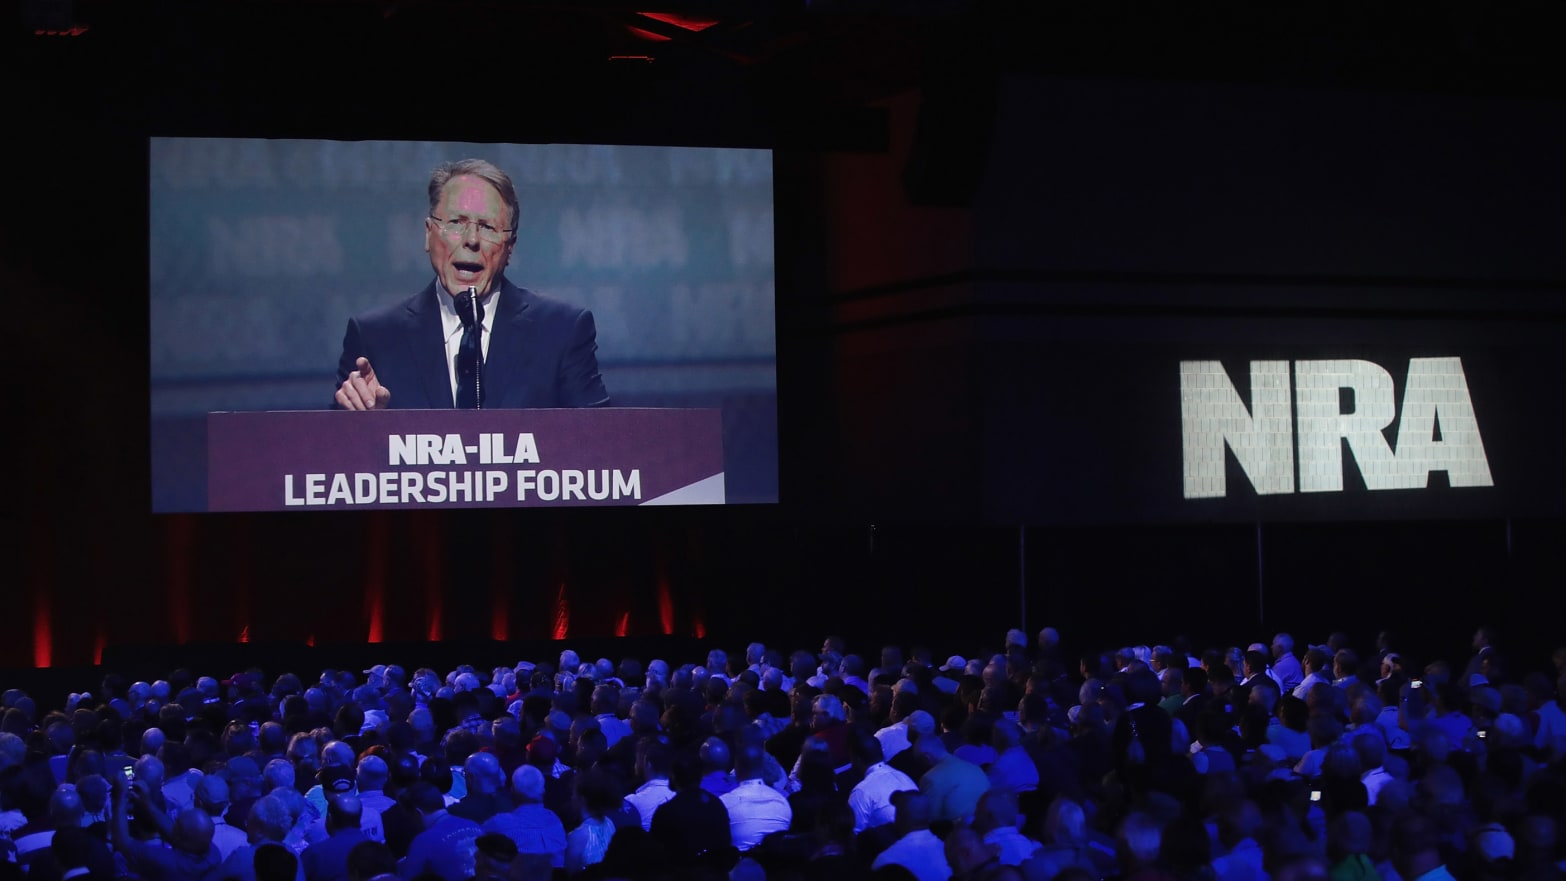 Ackerman McQueen Laid Off 50 People After Split From NRA: Lawyer